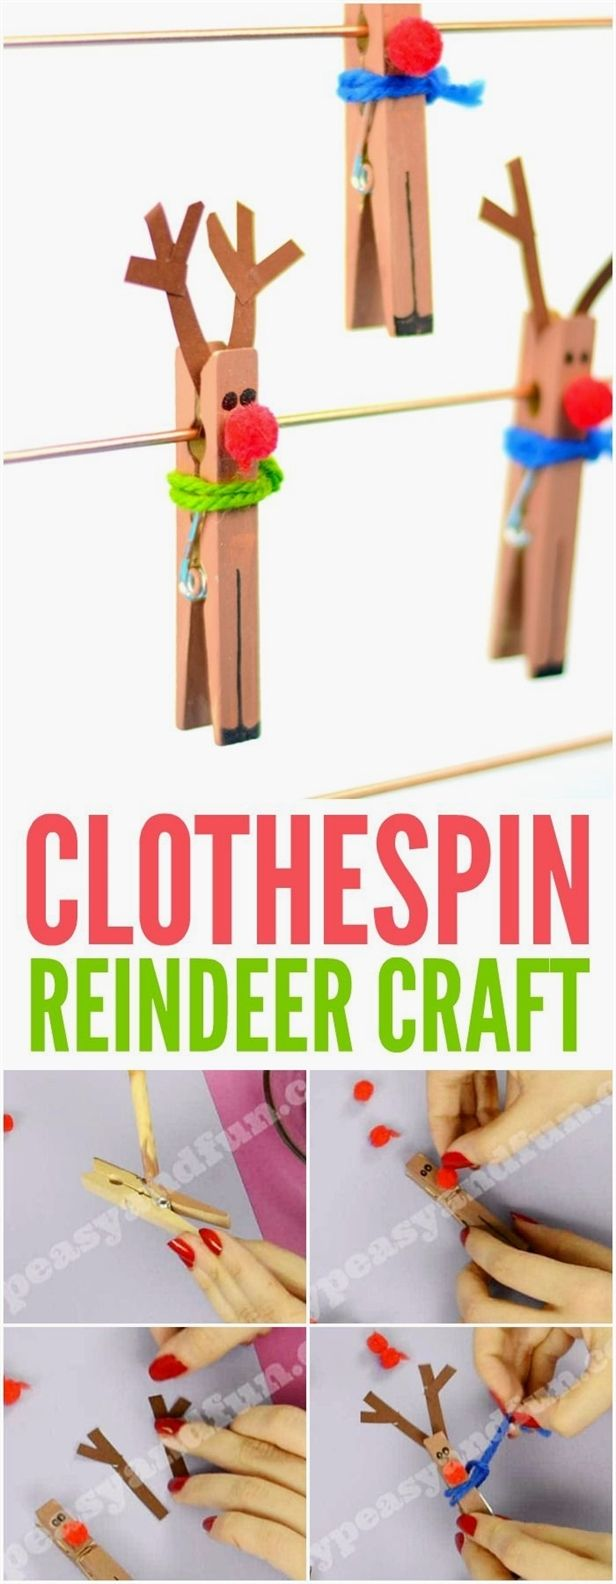 Clothespin Reindeer Craft for Kids. Super fun and simple Christmas craft idea for kids to make. #ChristmasCraftsForKids